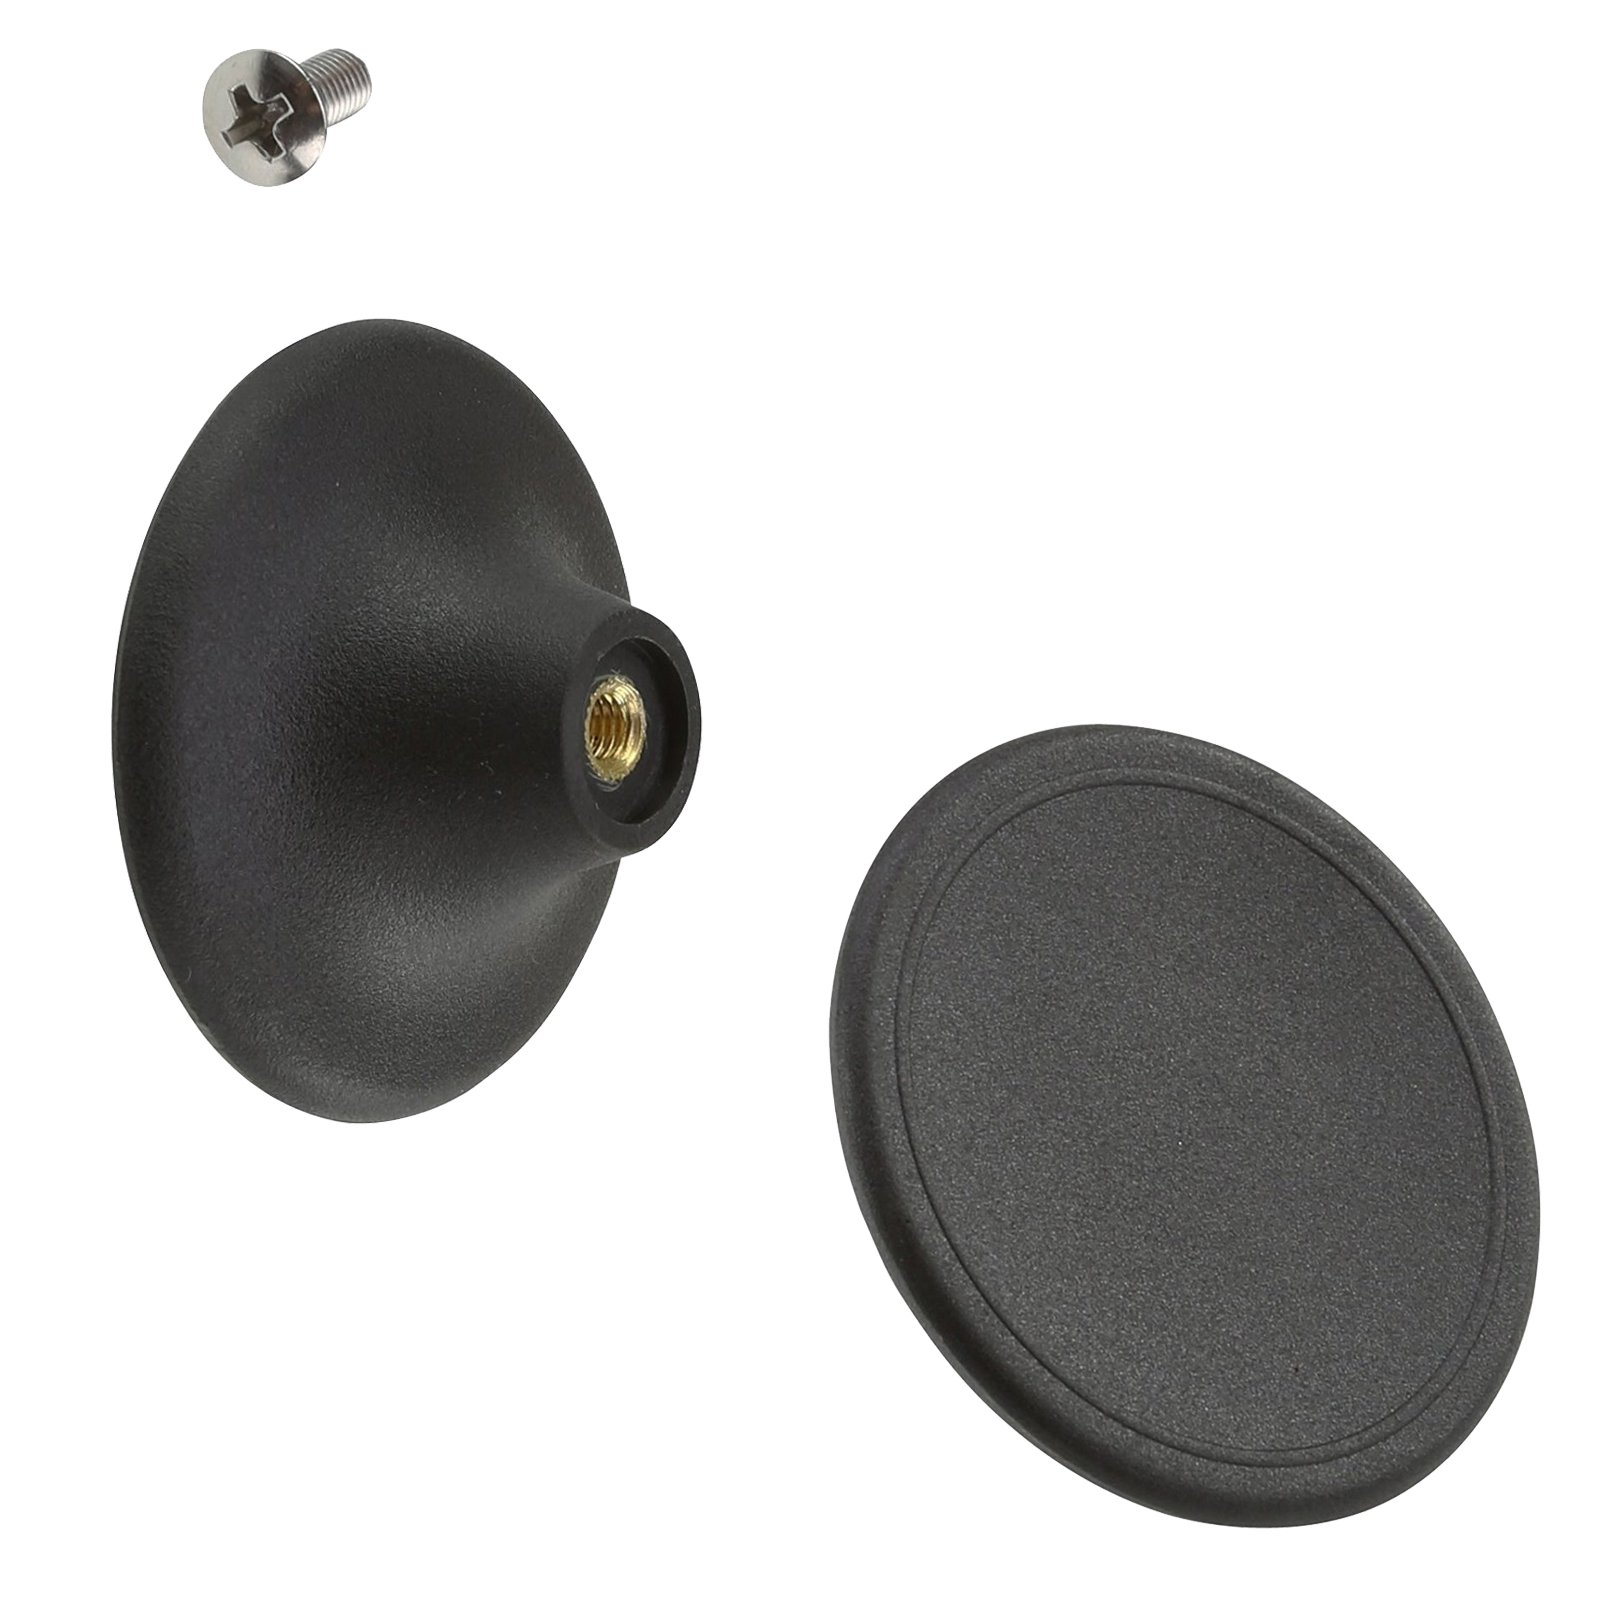 f6f3a1d81f7 Get Quotations · Large Replacement Knob Fits Le Creuset Round Shallow Oval  Casserole Lid w/ Screw